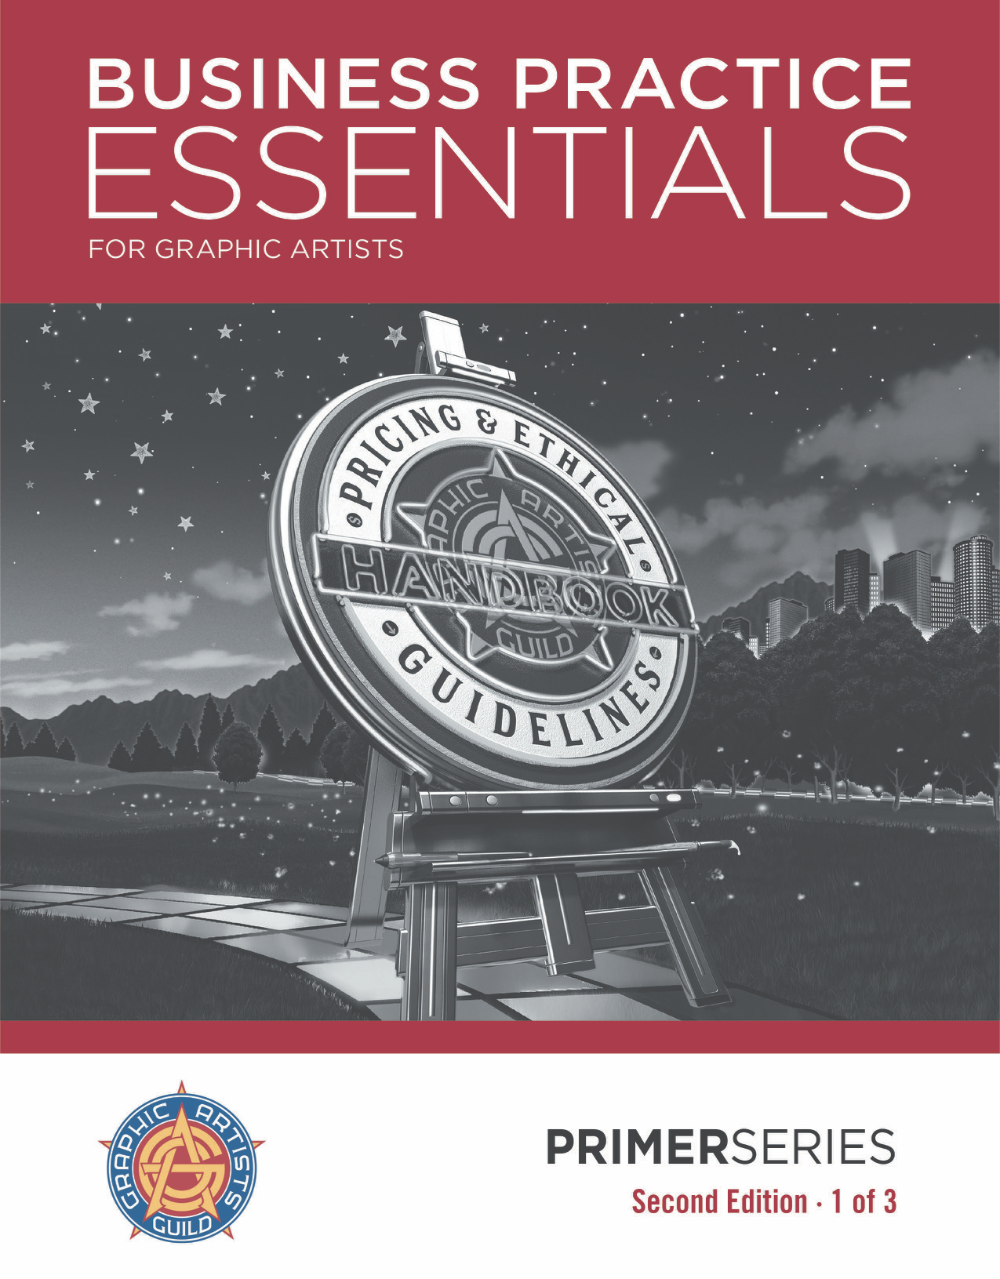 The Graphic Artists Guild Handbook Pricing Ethical Guidelines The Graphic Artist Guild Business Practices Graphic Artist Graphic Design Business